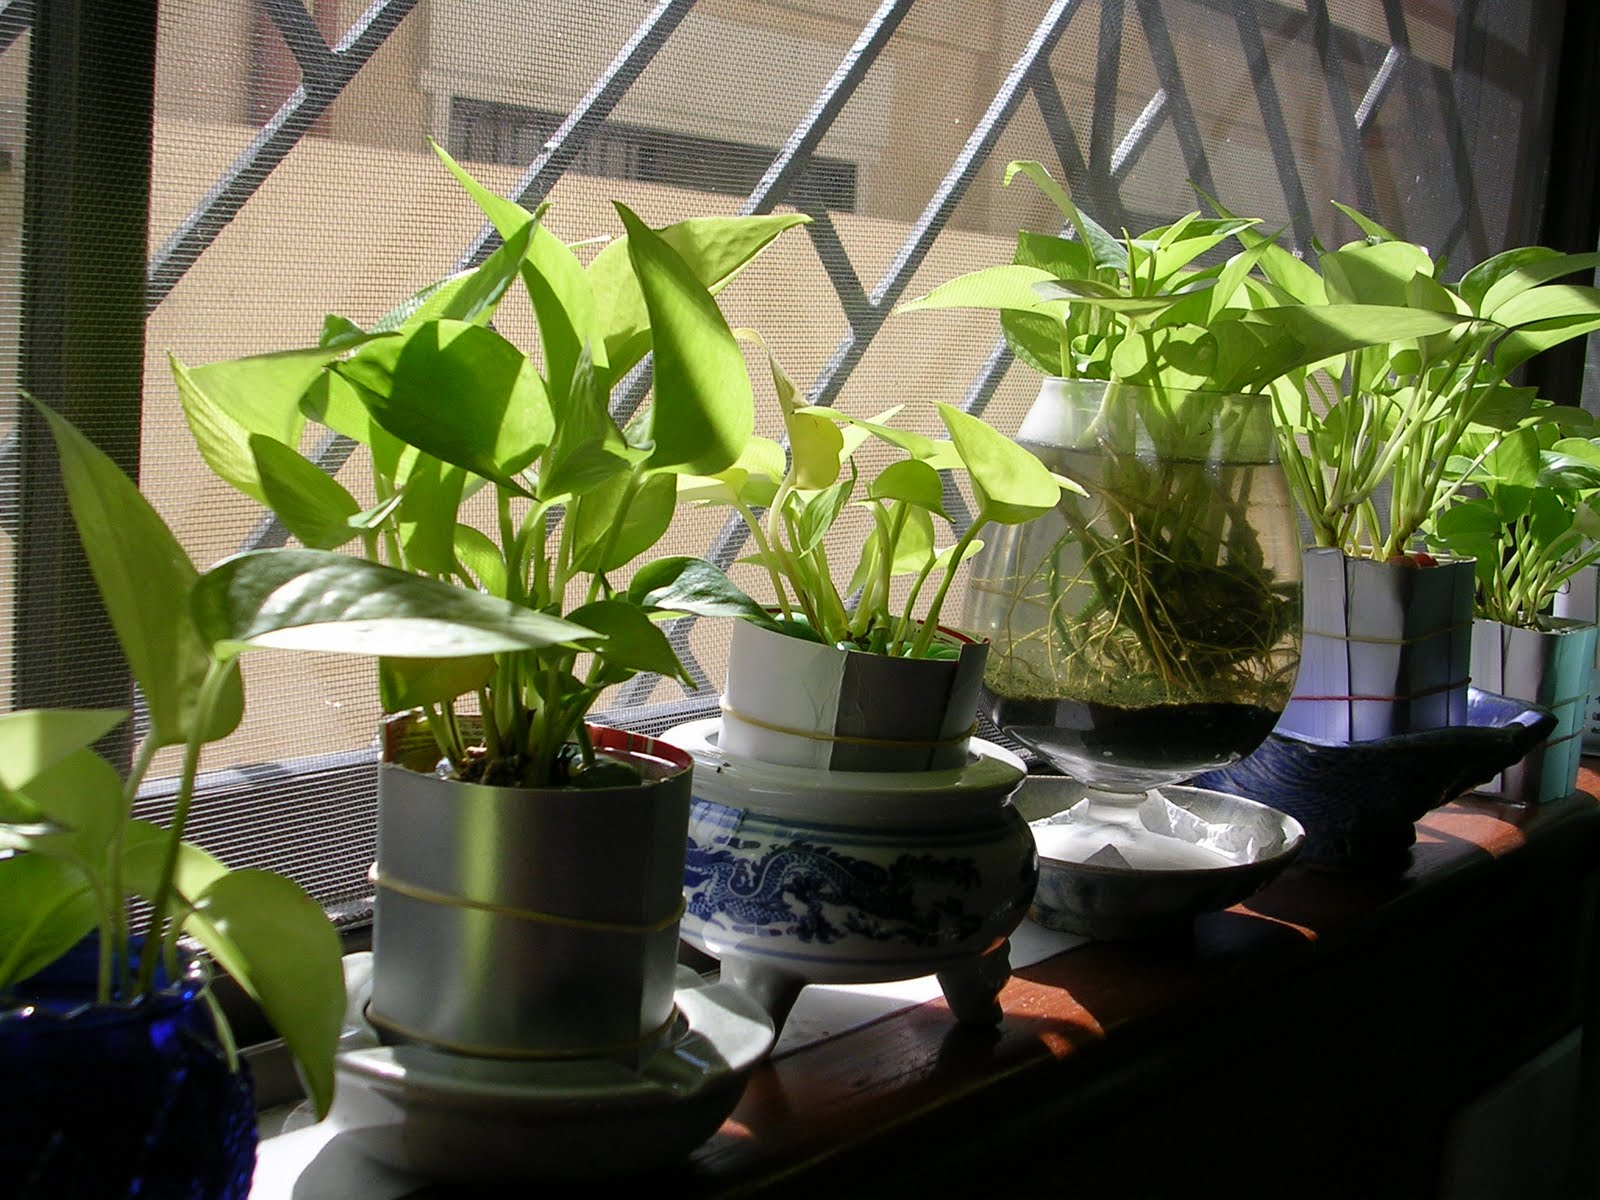 Kitchen window for plants - What I Like About Low Tech Hydrophonic Gardening Is That It Offers A Clean Way To Put In Live Plants Inside The House Without Bringing In All